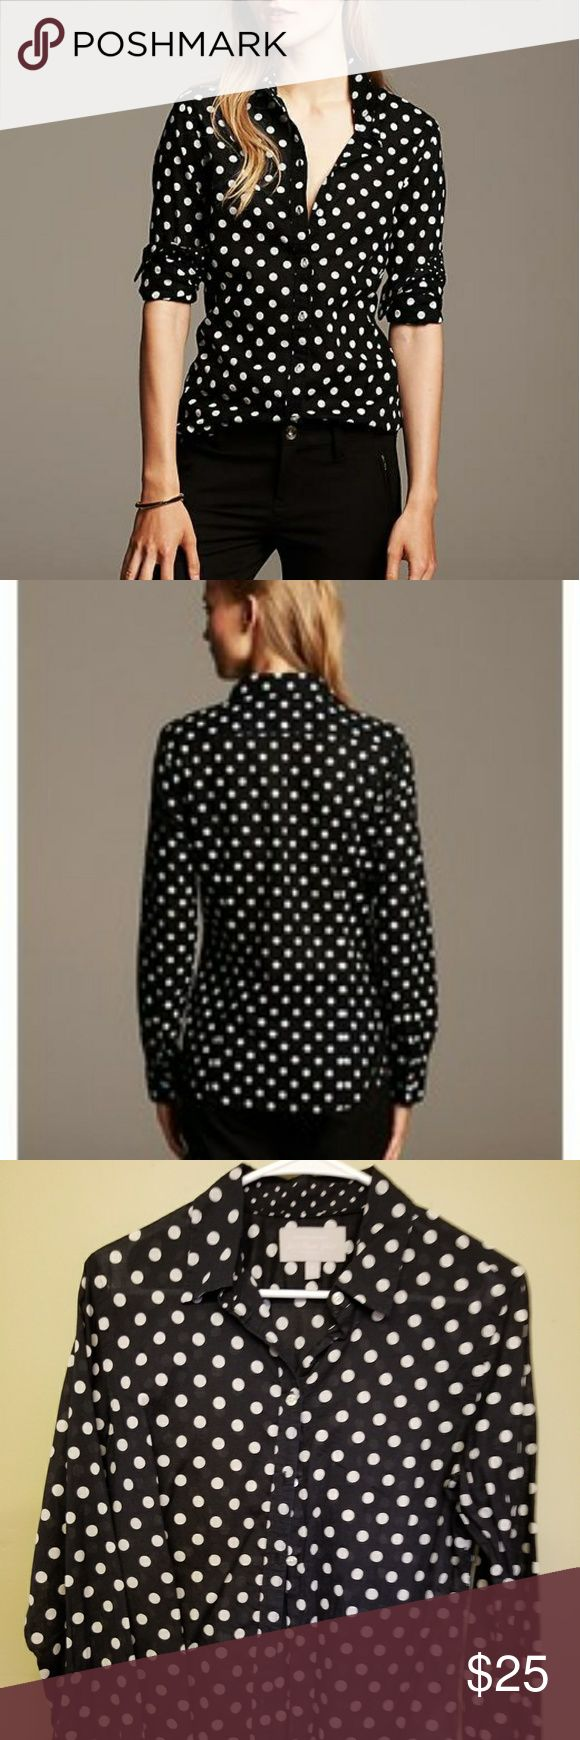 💖Banana Republic💖 Women's Polka Dot Oxford Shirt Banana Republic Soft Wash Dot Oxford Shirt. Wore a few times. Medium size. Banana Republic Tops Button Down Shirts